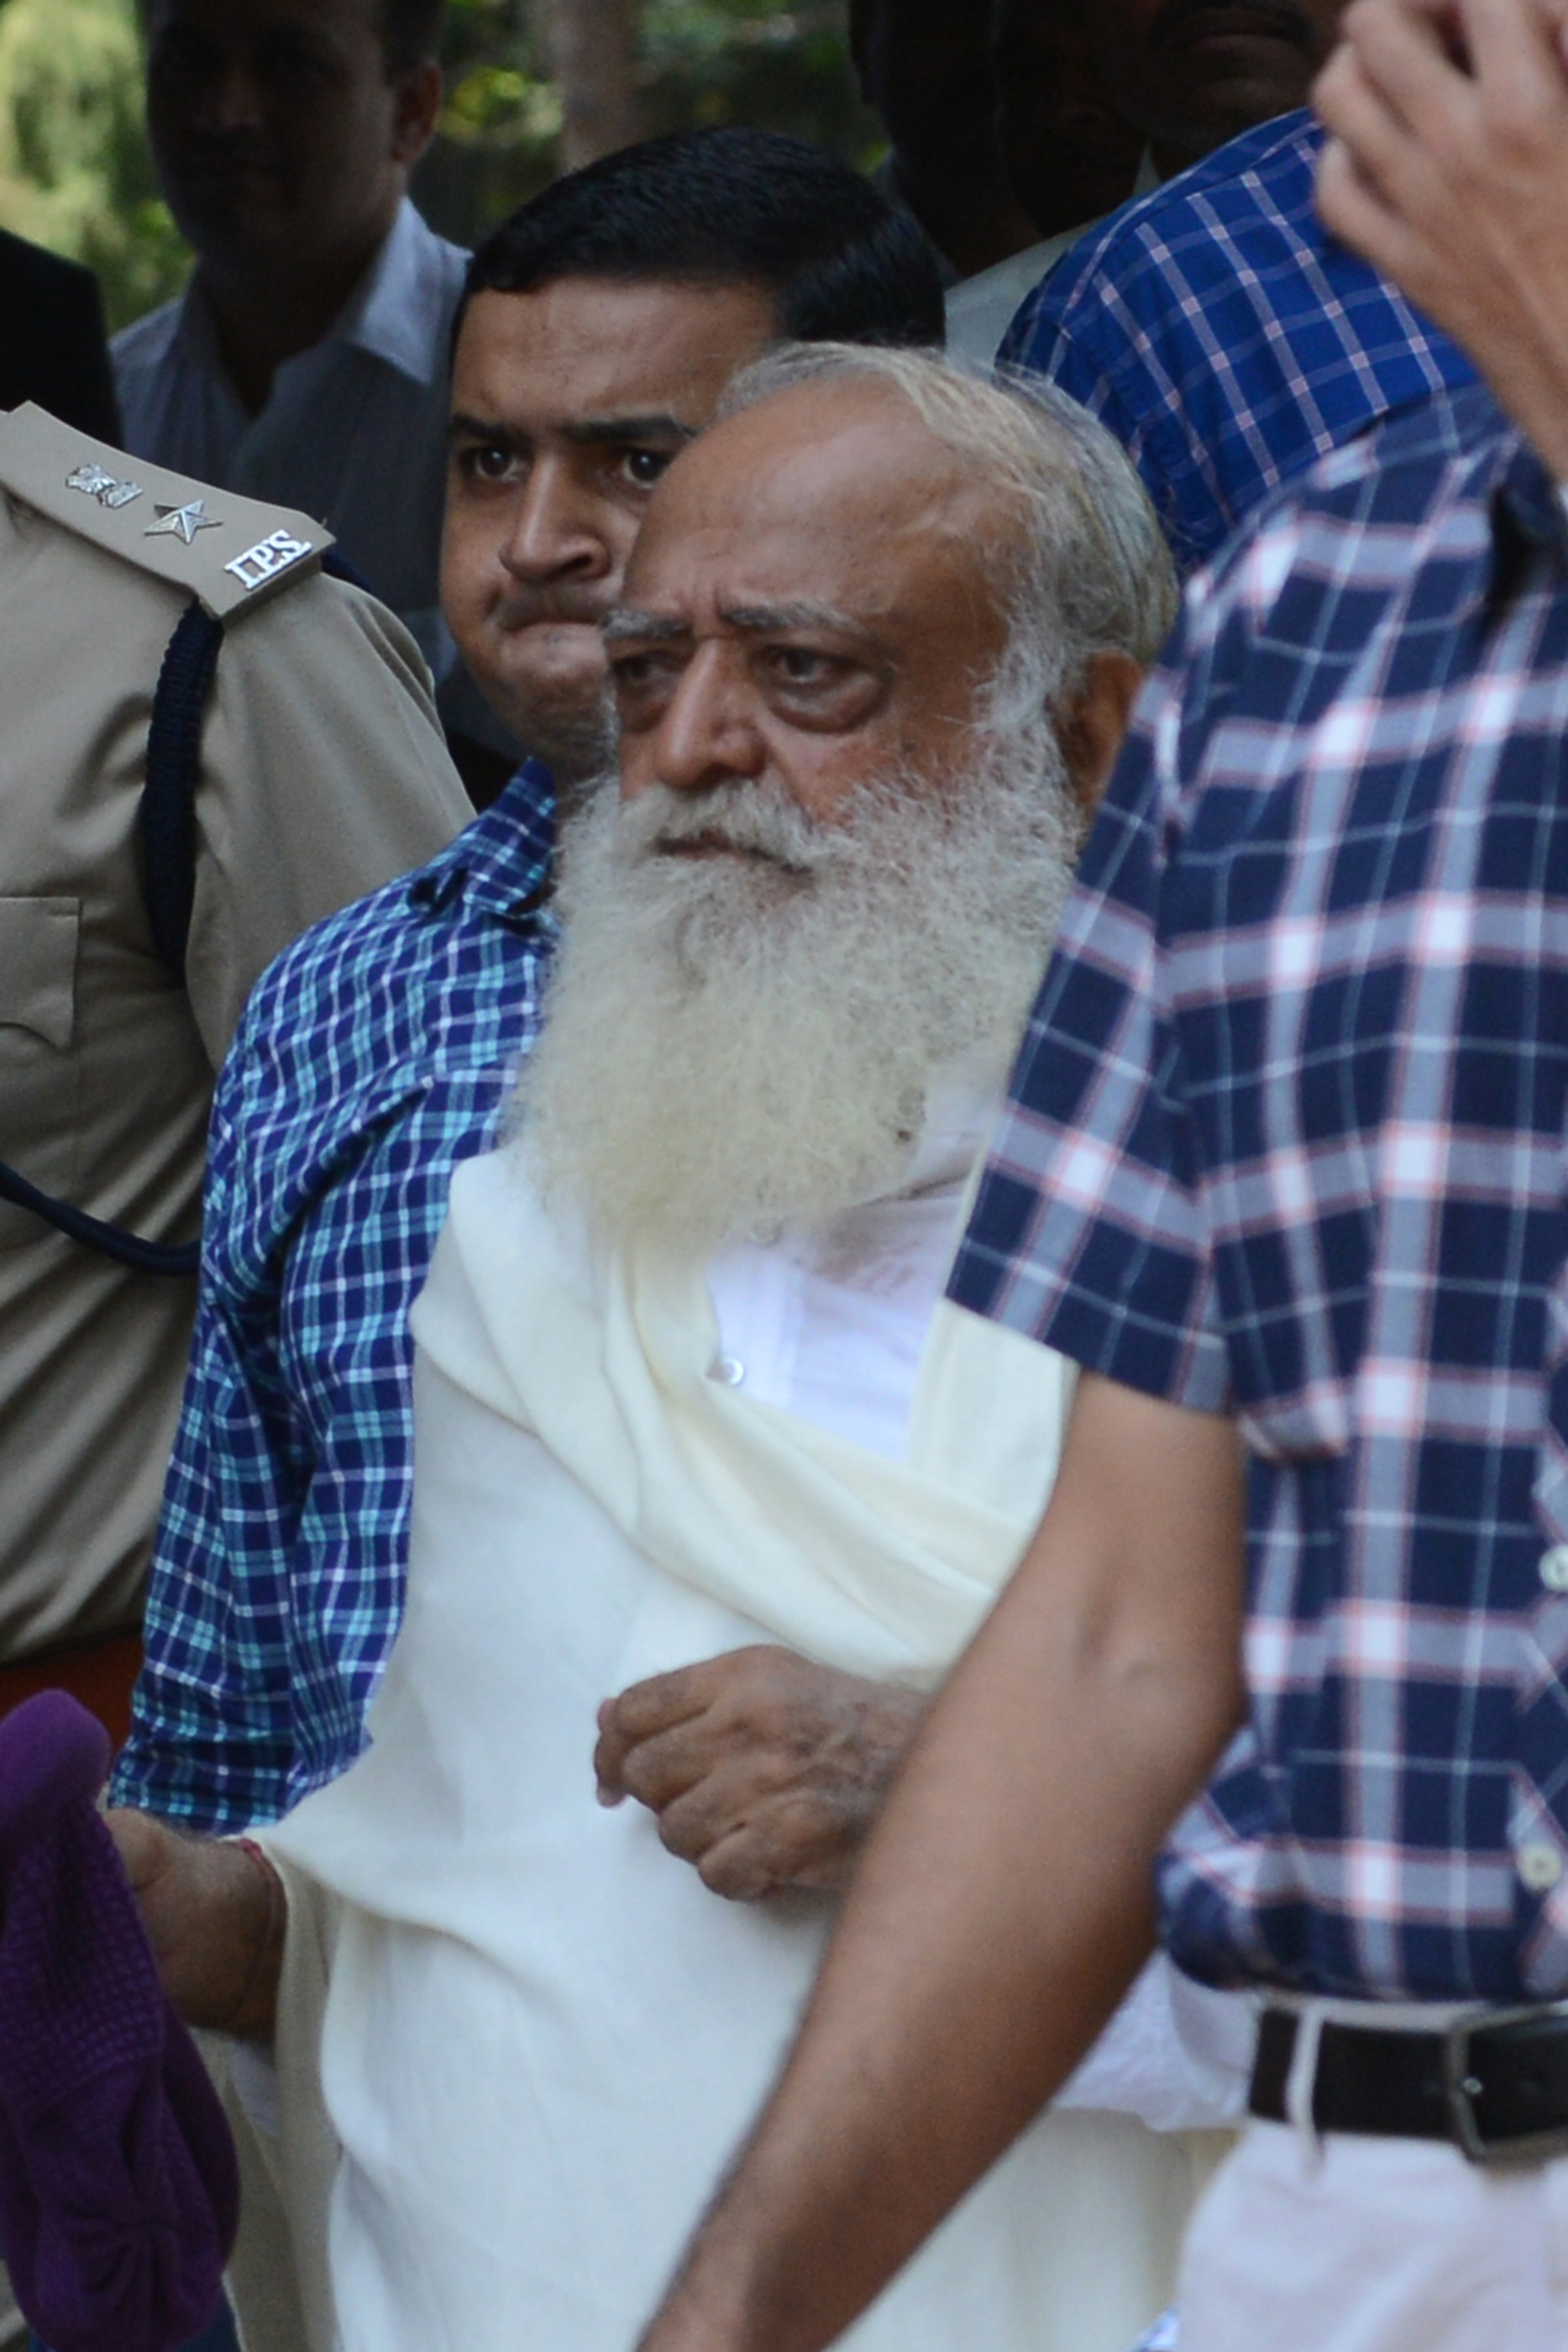 Indian spiritual guru Asaram Bapu is escorted by state police as he arrives at a local court in Gandhinagar, some 30 kms. from Ahmedabad, on October 15, 2013.